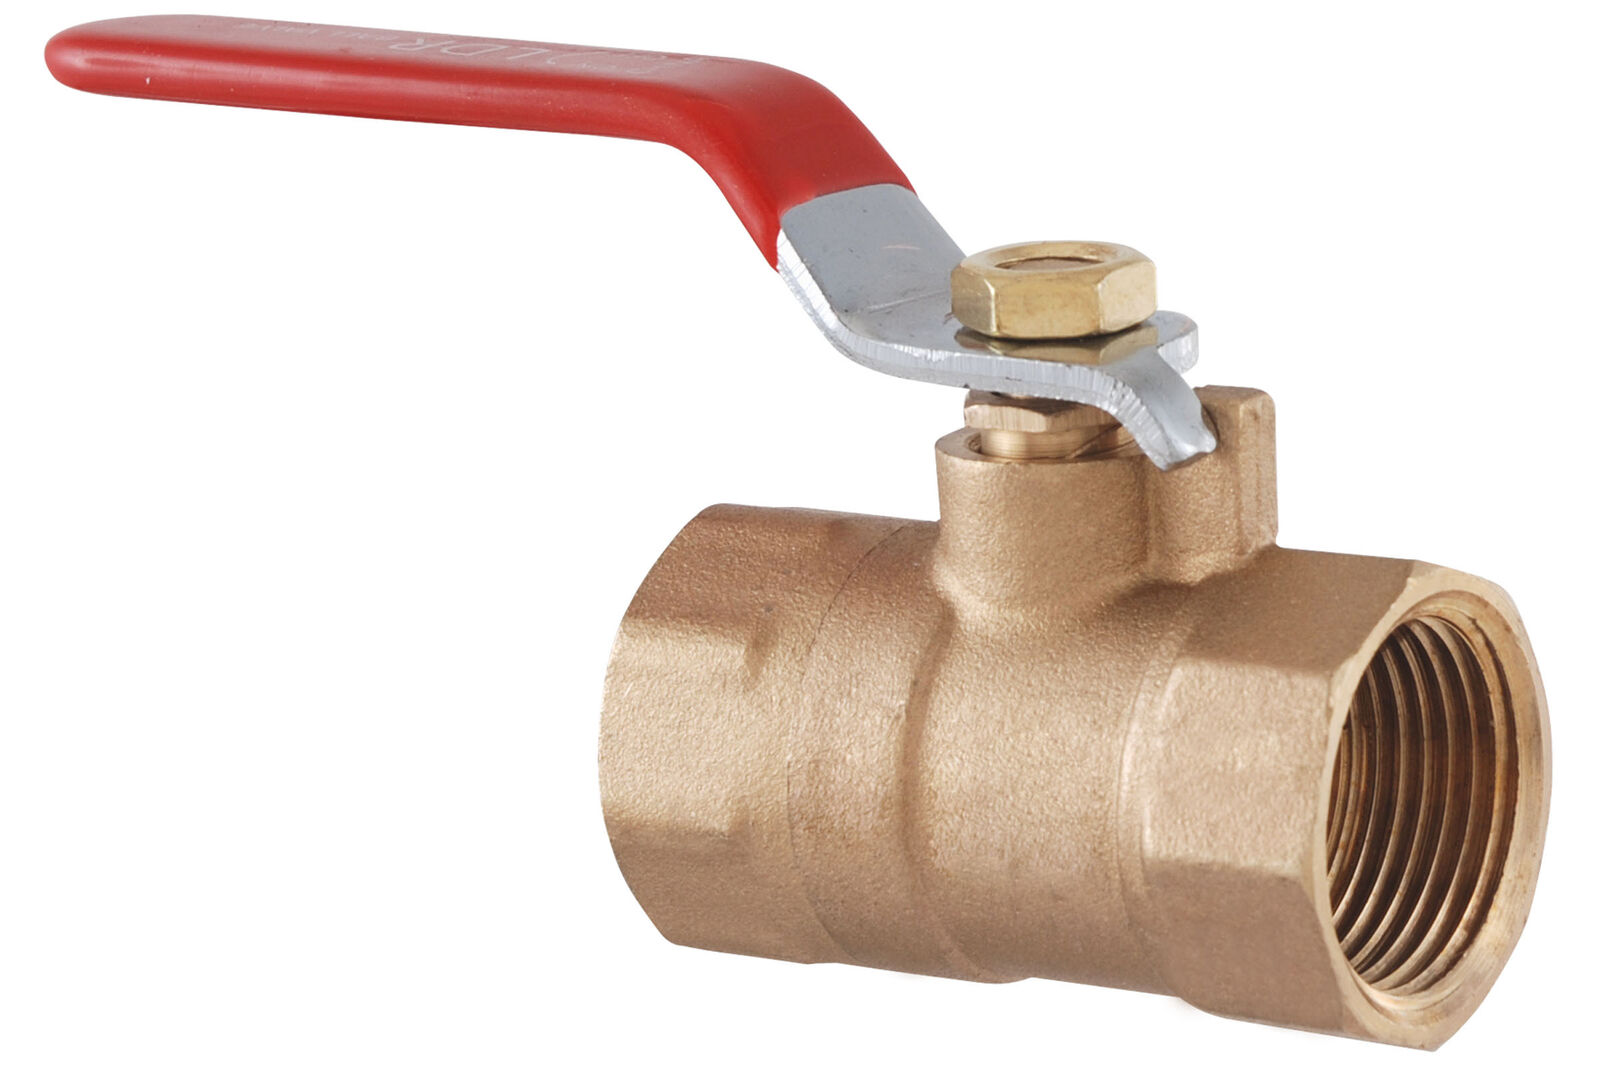 Tube to Pipe Parker FCKCI731-4-4-pk5 Flow Control Regulator 1//4 Pack of 5 Composite Push-to-Connect and Male Pipe Compact Right Angle 1//4